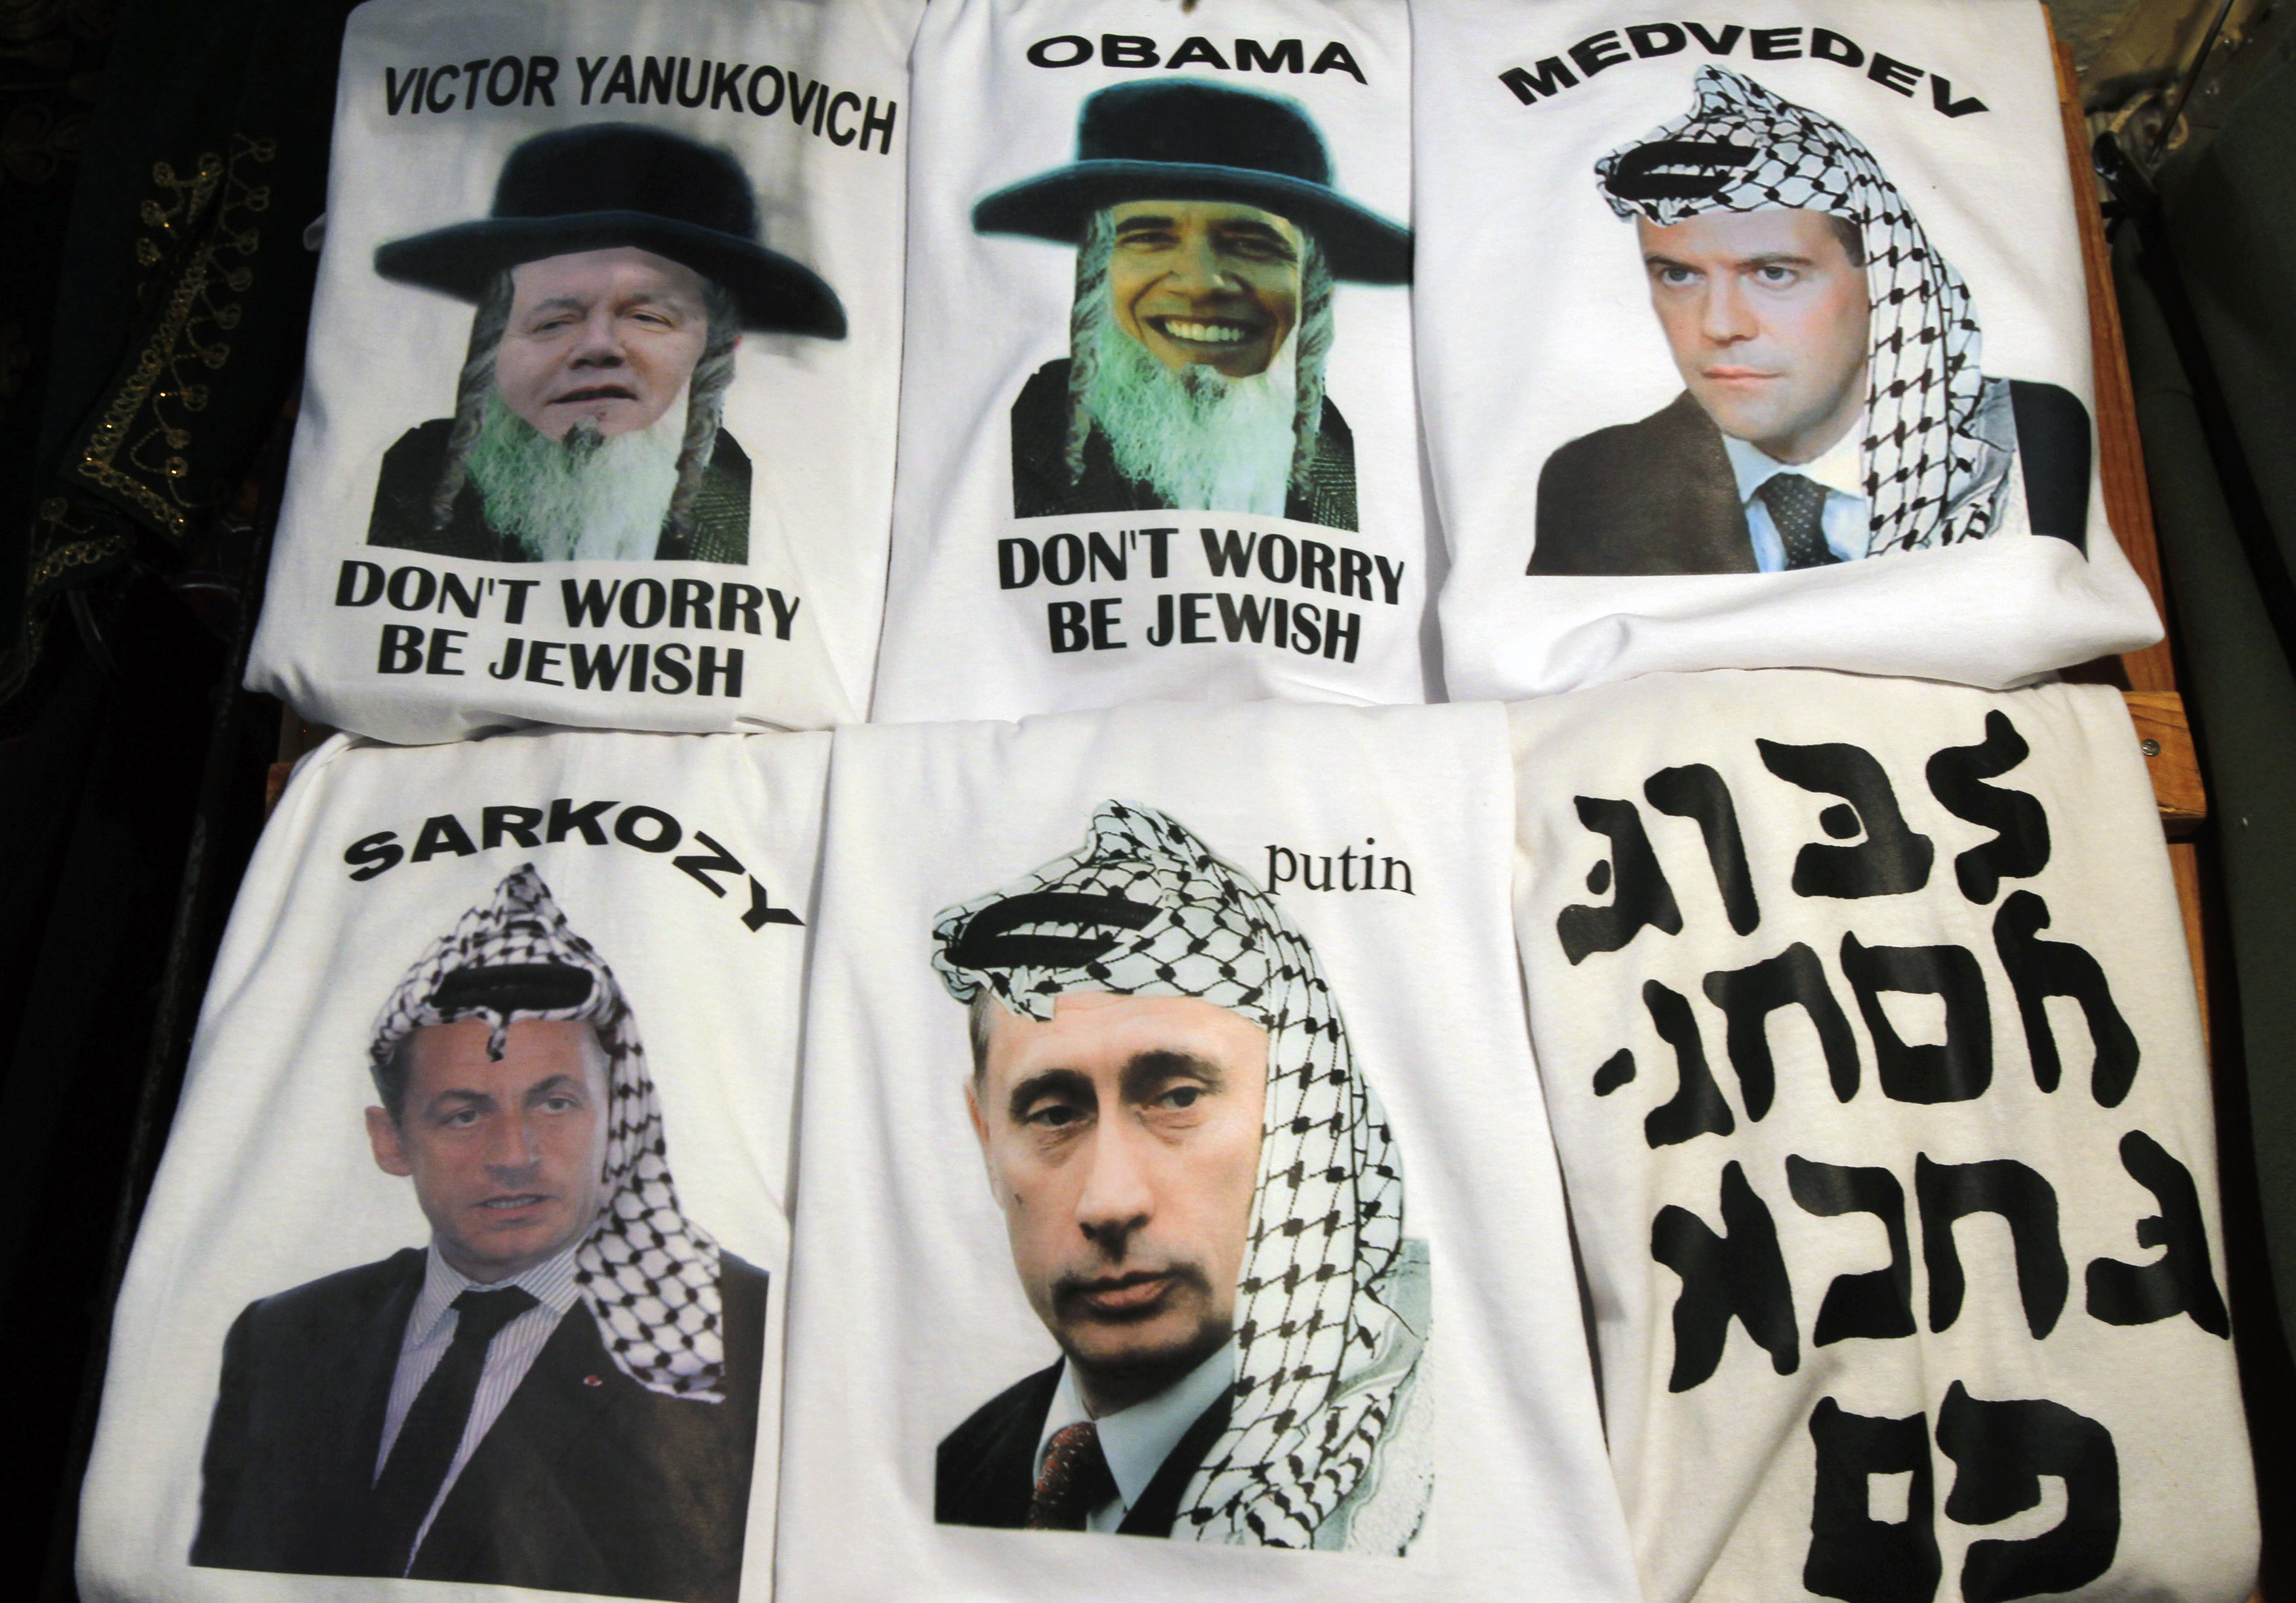 Shirts with the images of U.S. President Barack Obama, Russia's Prime Minister Vladimir Putin and President Dmitry Medvedev, France's President Nicolas Sarkozy and Ukraine's President Viktor Yanukovich are displayed for sale in a market in Jerusalem's Old City September 23, 2011. ©REUTERS/Baz Ratner